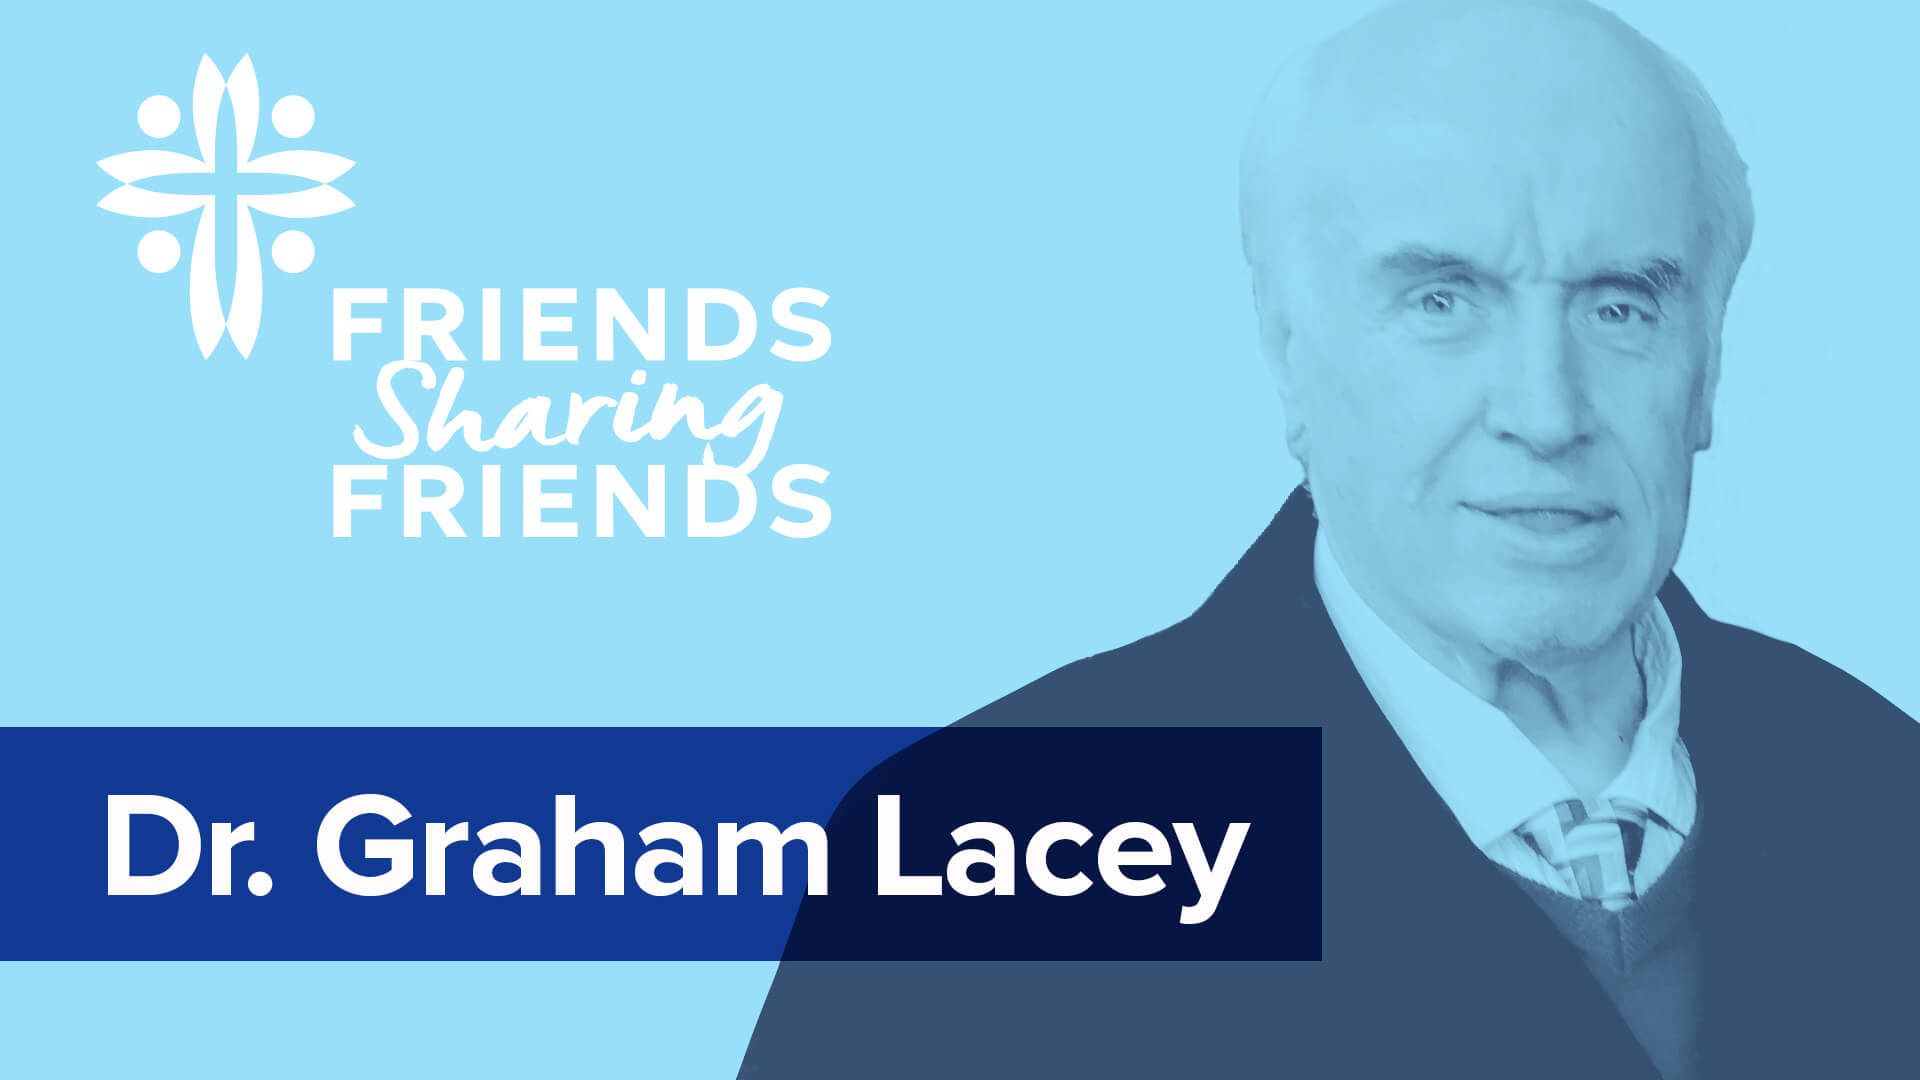 Dr. Graham Lacey